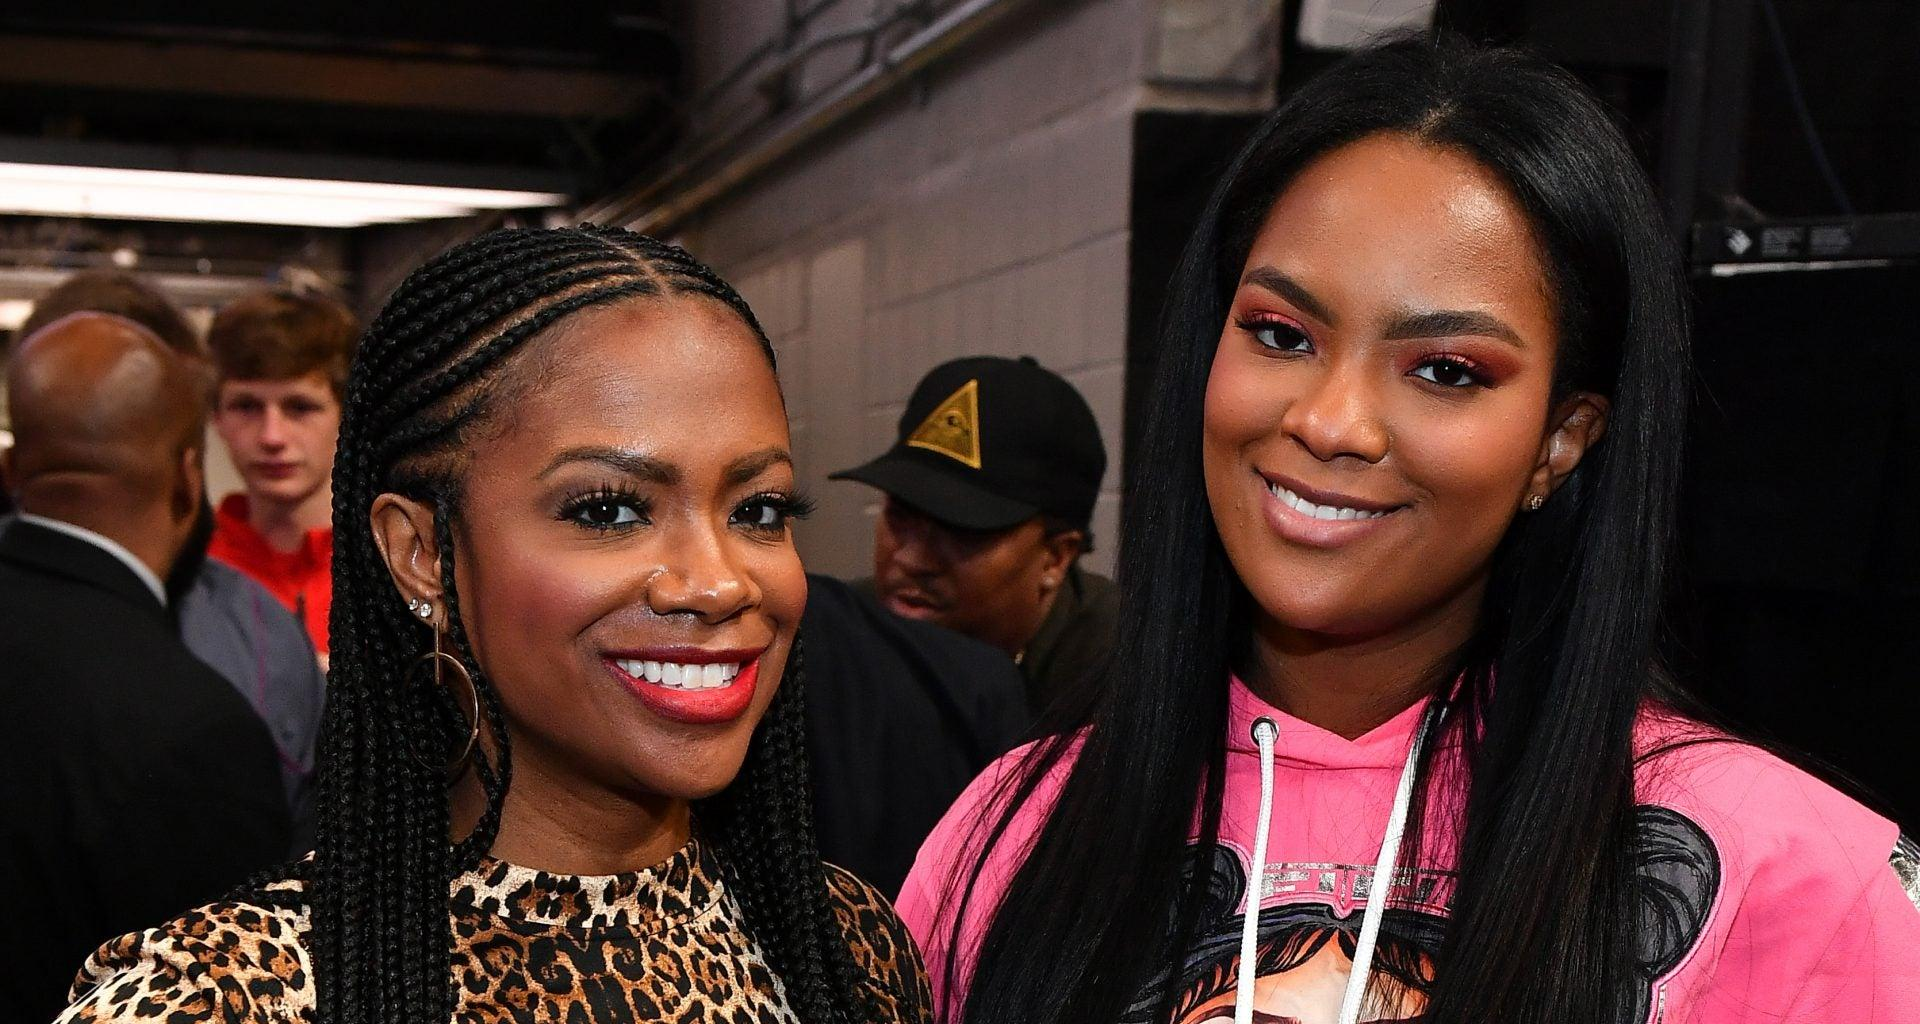 Kandi Burruss' Bath And Body Products Are The Best - Check Out The Video That She Shared